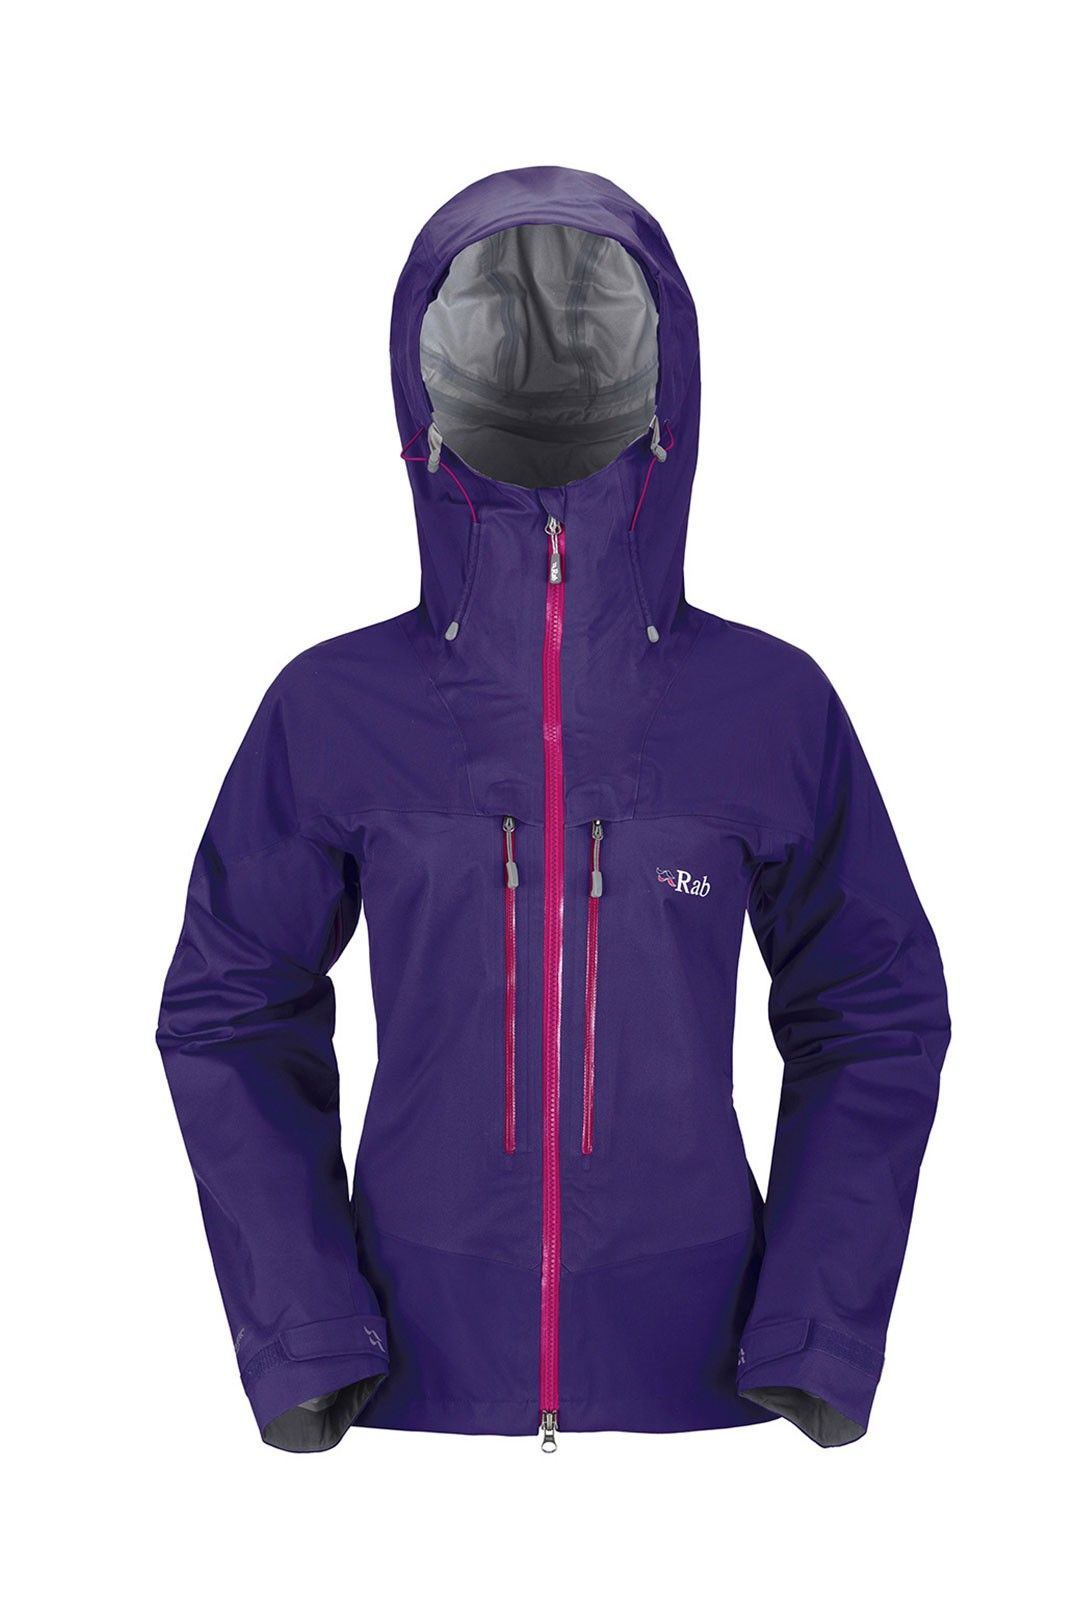 cefd7c1dc90 £300 Neo Guide Jacket The Women's Neo Guide Jacket is a premium waterproof  jacket, in a highly breathable Polartec® NeoShell® stretch fabric, designed  for ...